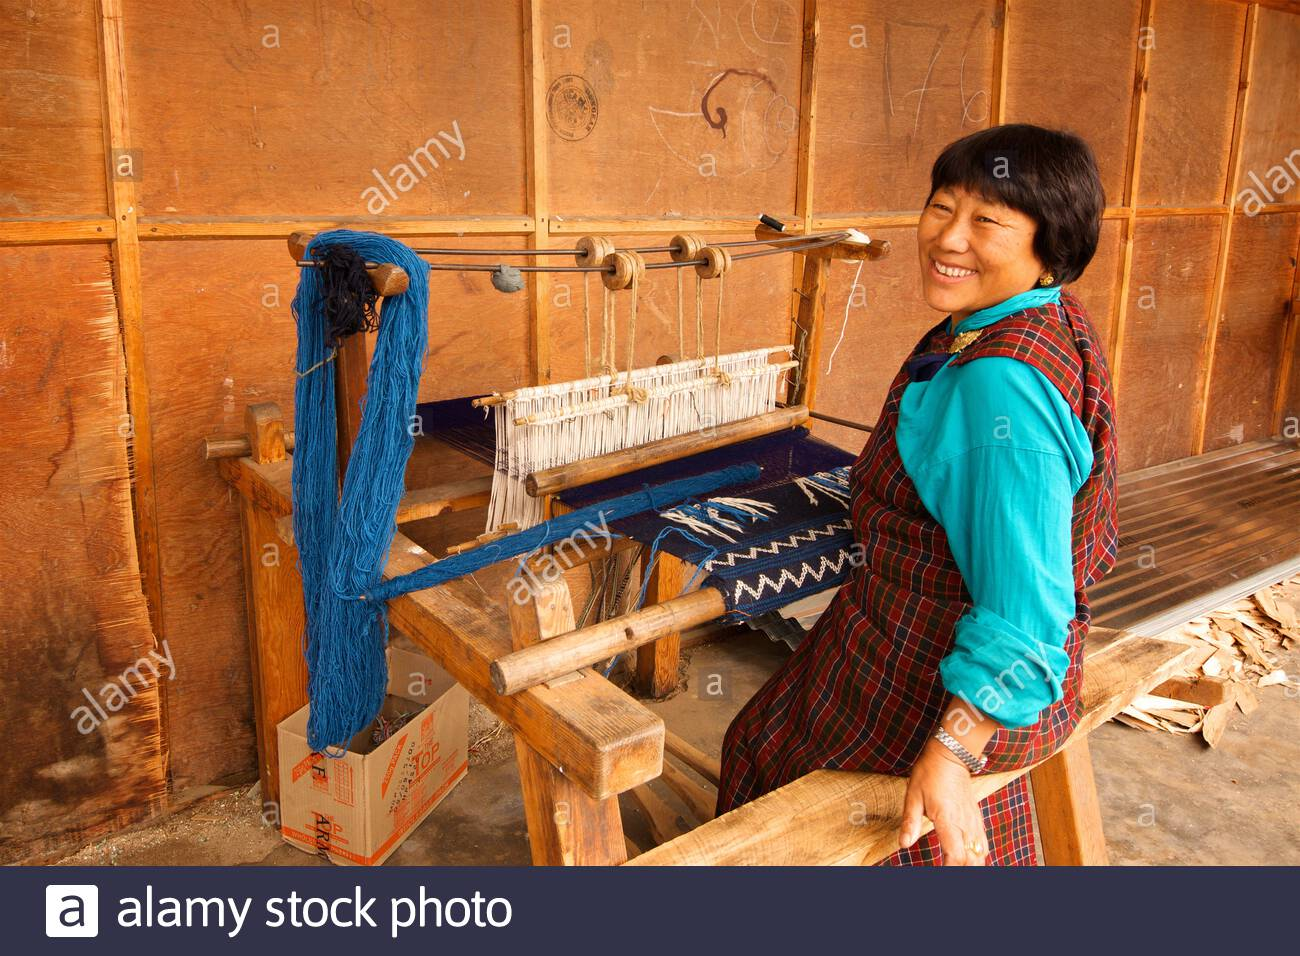 a-woman-demonstrating-the-use-of-a-traditional-wooden-bhutanese-loom-used-for-weaving-textiles-at-a-roadside-textile-store-bumthang-district-bhutan-2C78J04.jpg